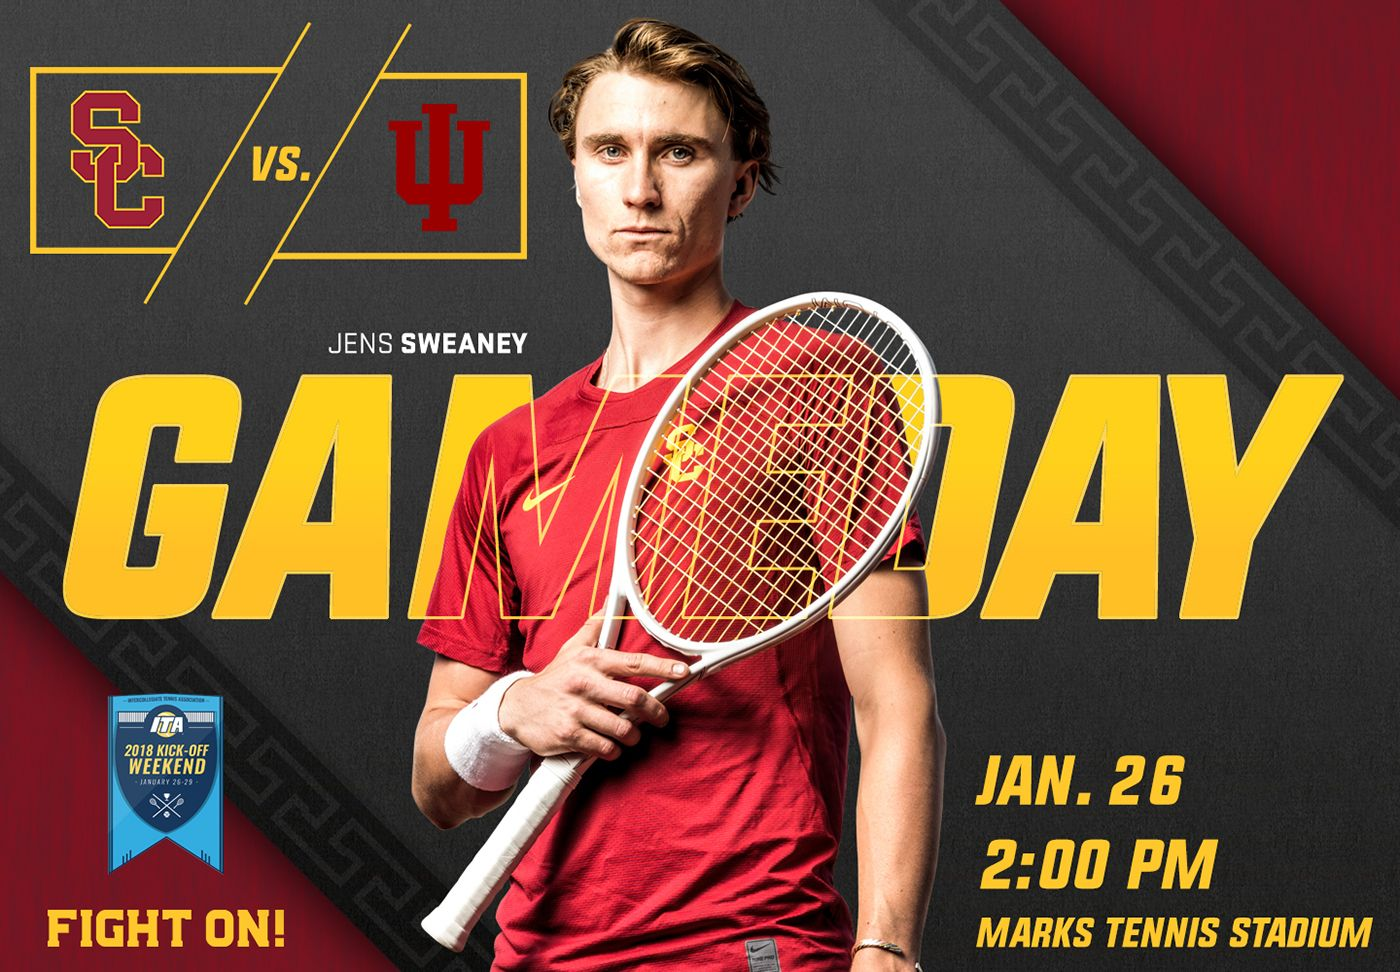 Social Media Templates For Usc Men S And Women S Tennis Teams Graphics Used For Instagram Twitter And Facebook Social Media Template Tennis Social Media